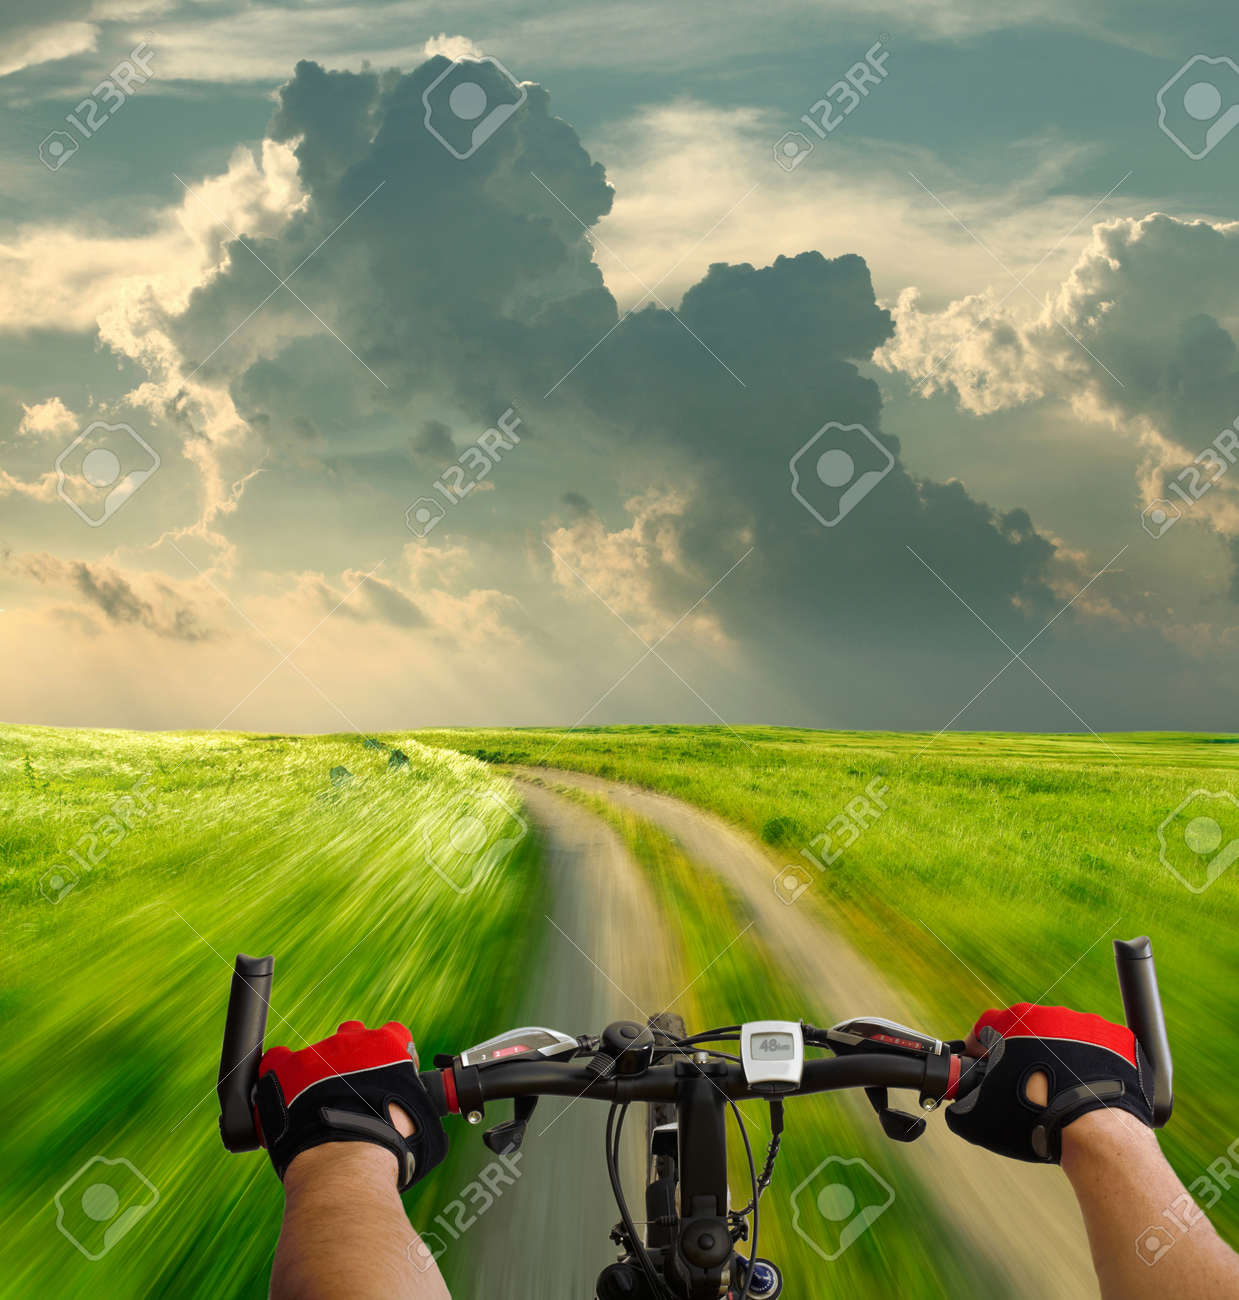 Man with bicycle riding country road Stock Photo - 11743795